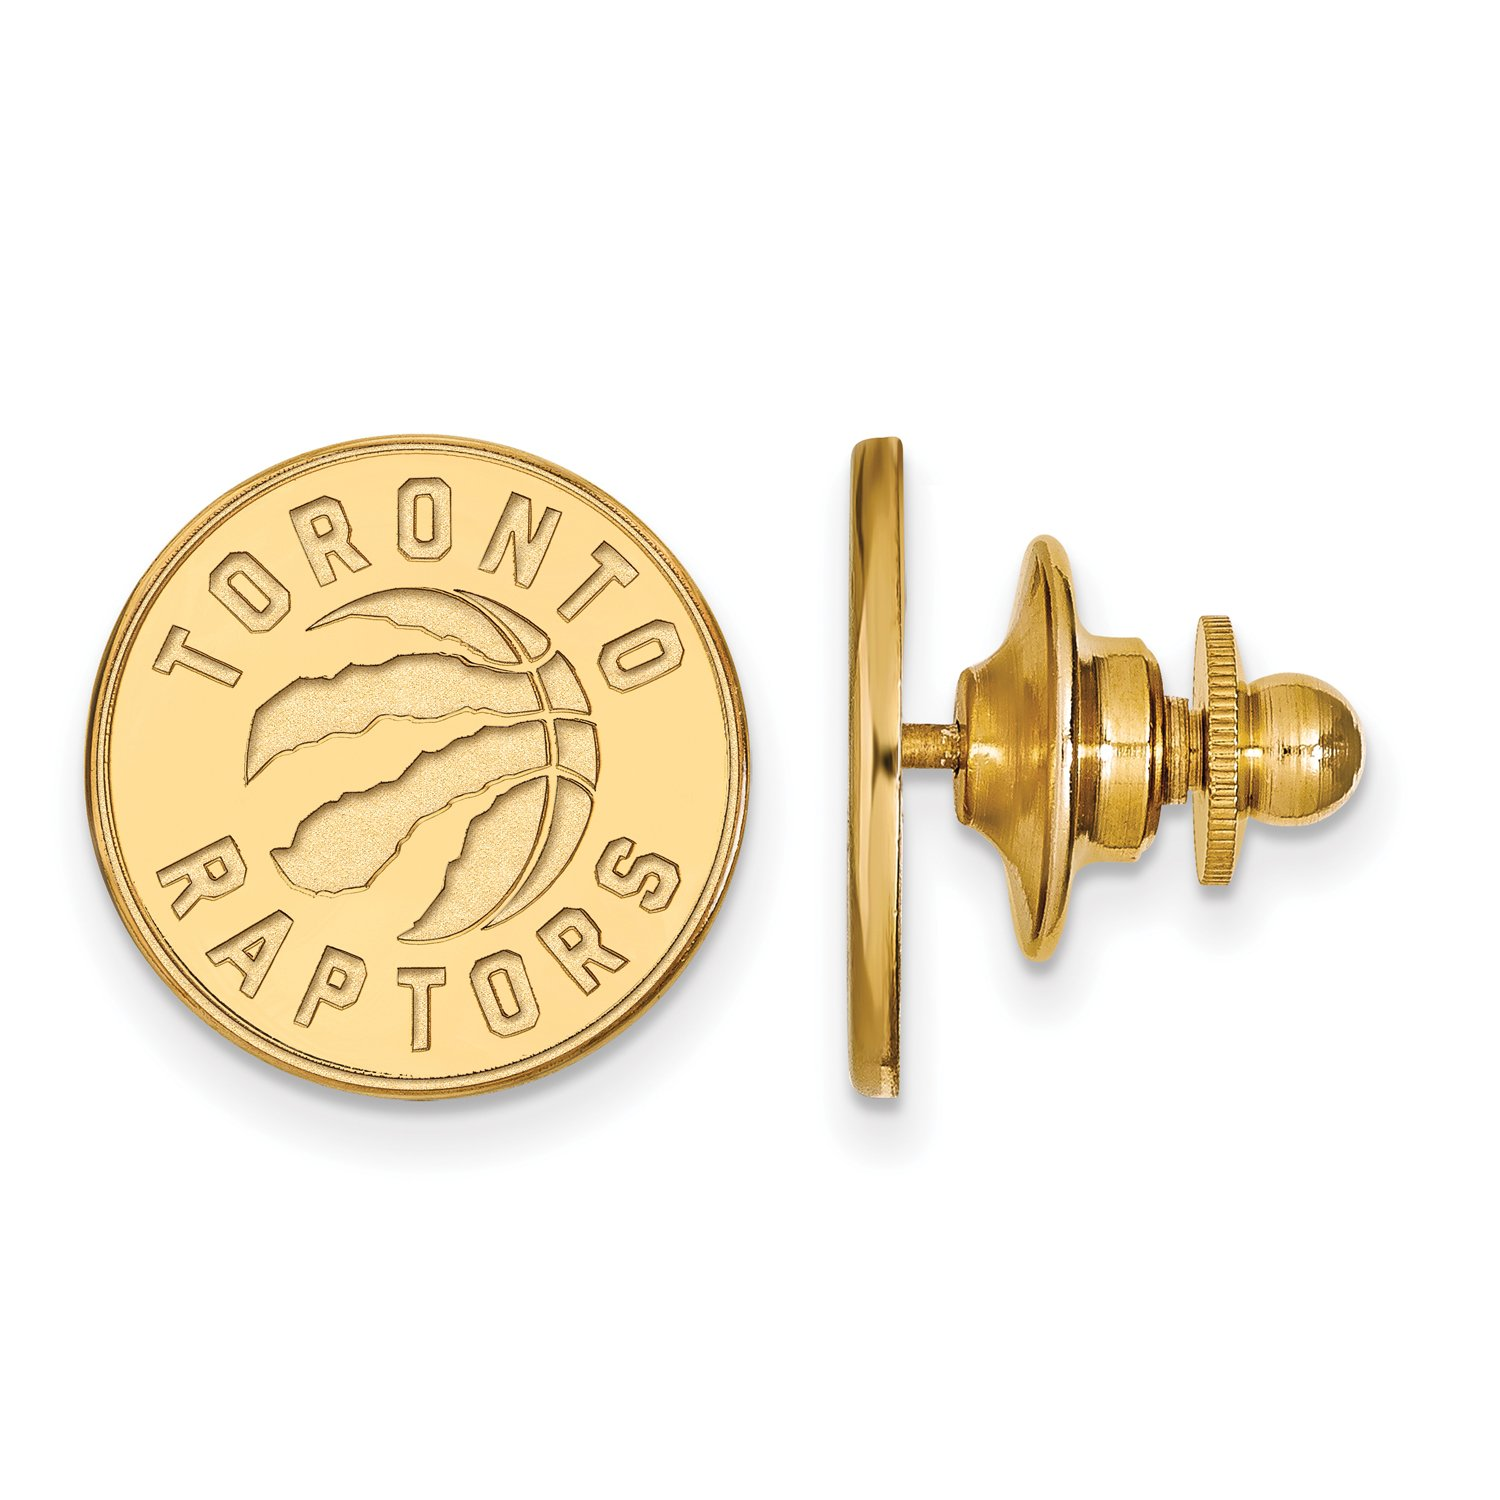 Toronto Raptors Lapel Pin (14k Yellow Gold)